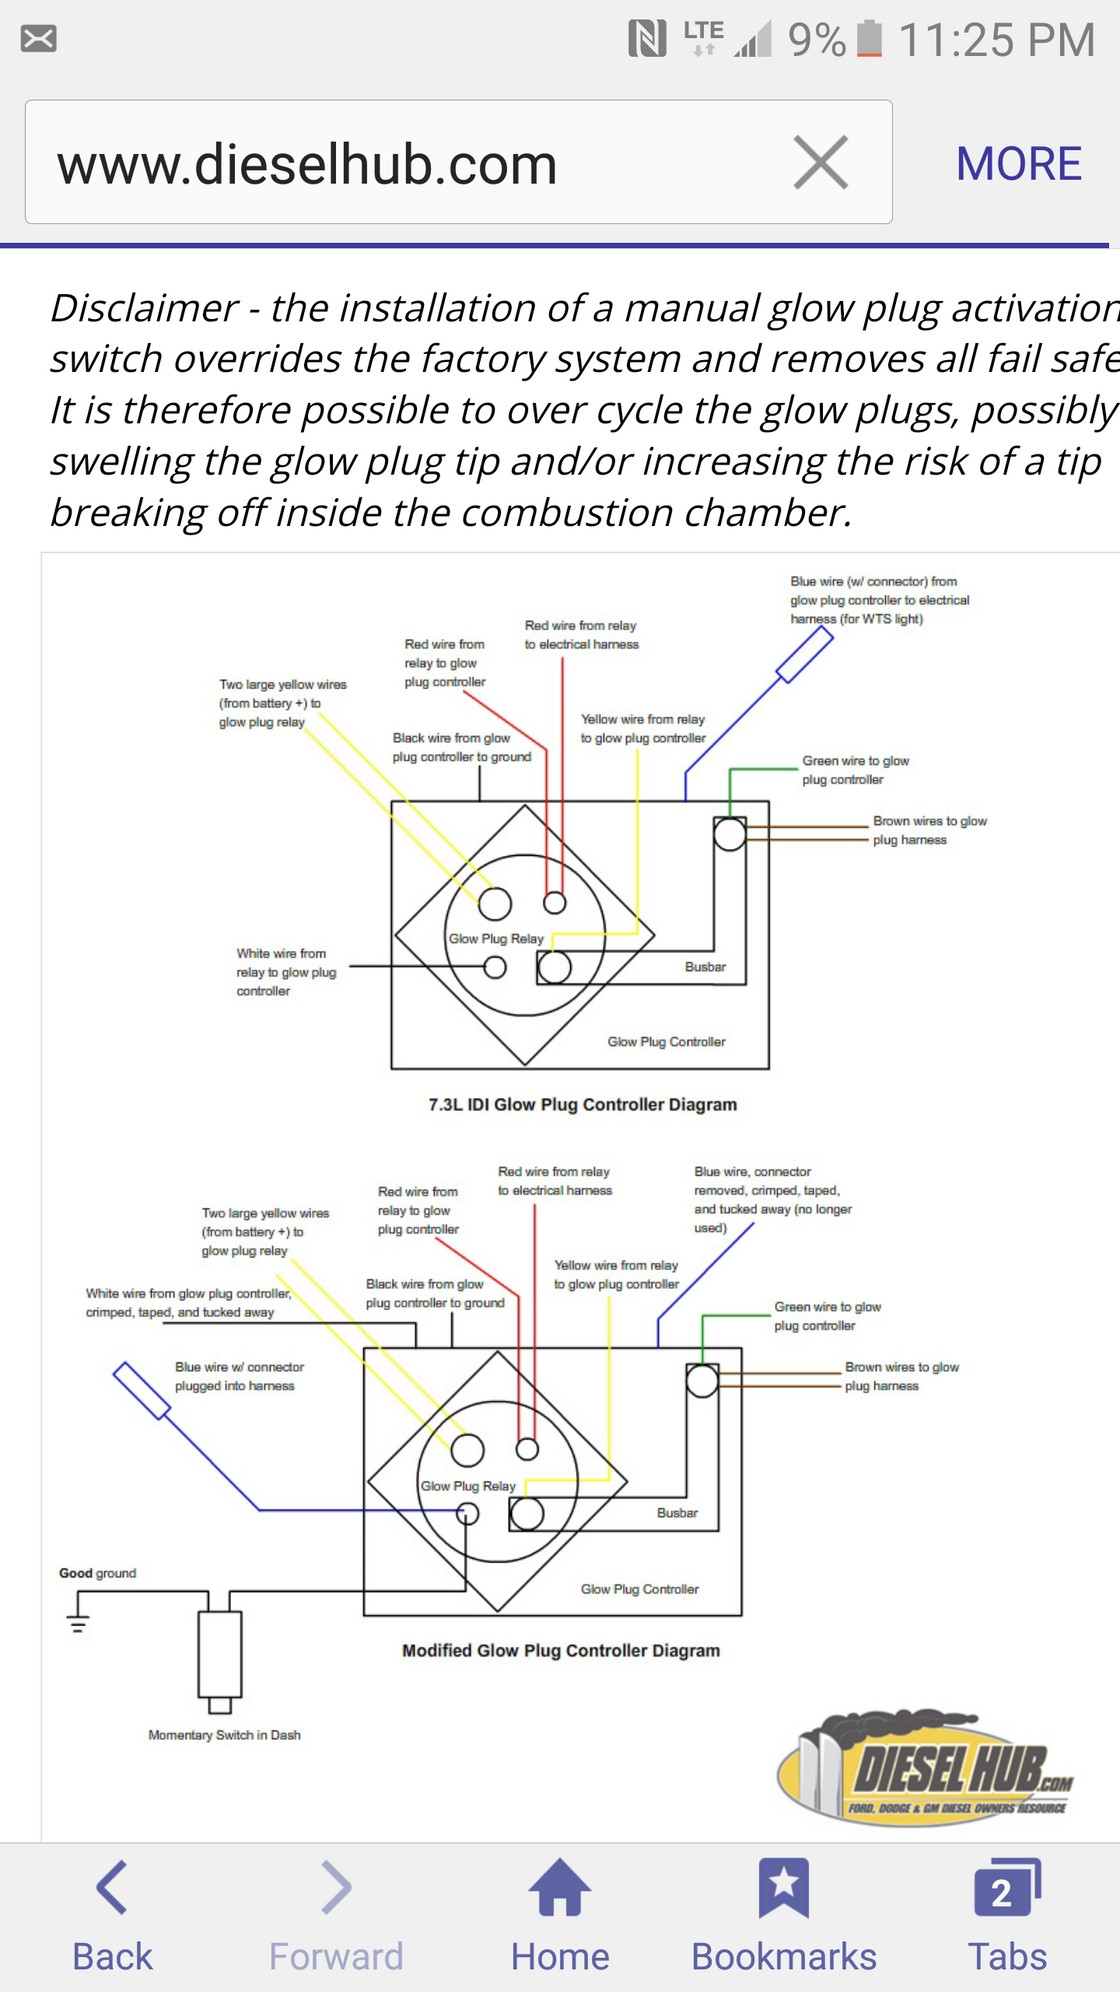 Outlet Receptacle Wire Up How To Manual Guide